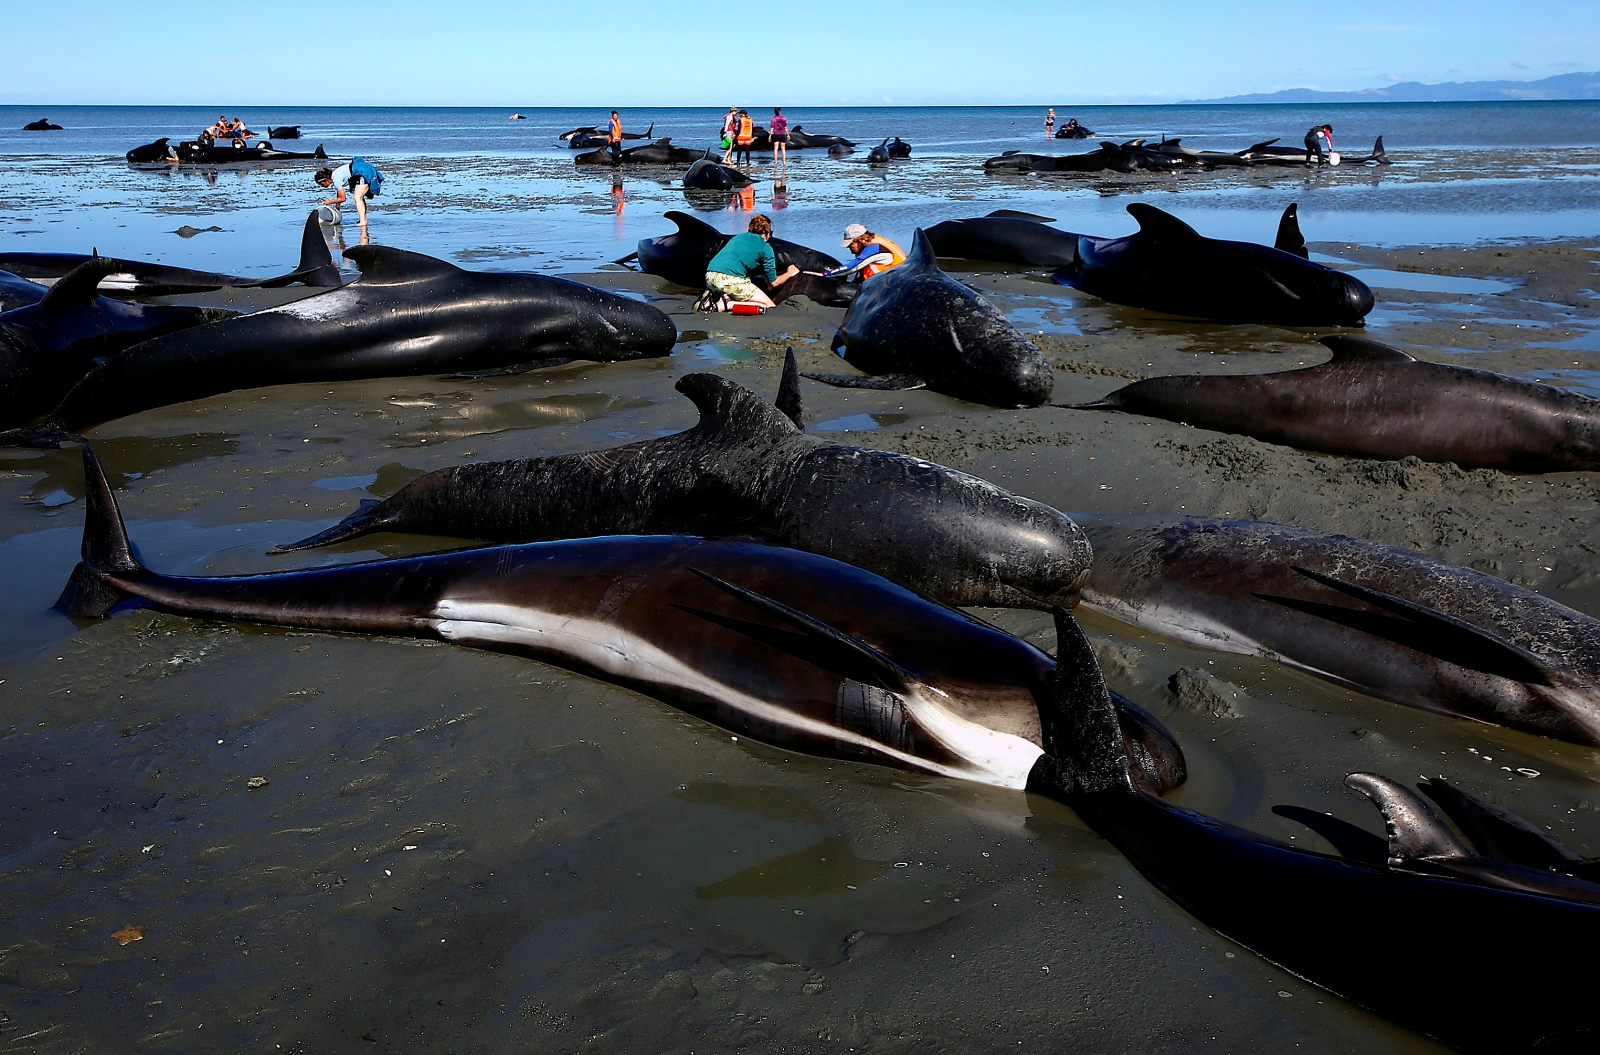 High Tide Comes To The Rescue Of 17 Whales In New Zealand